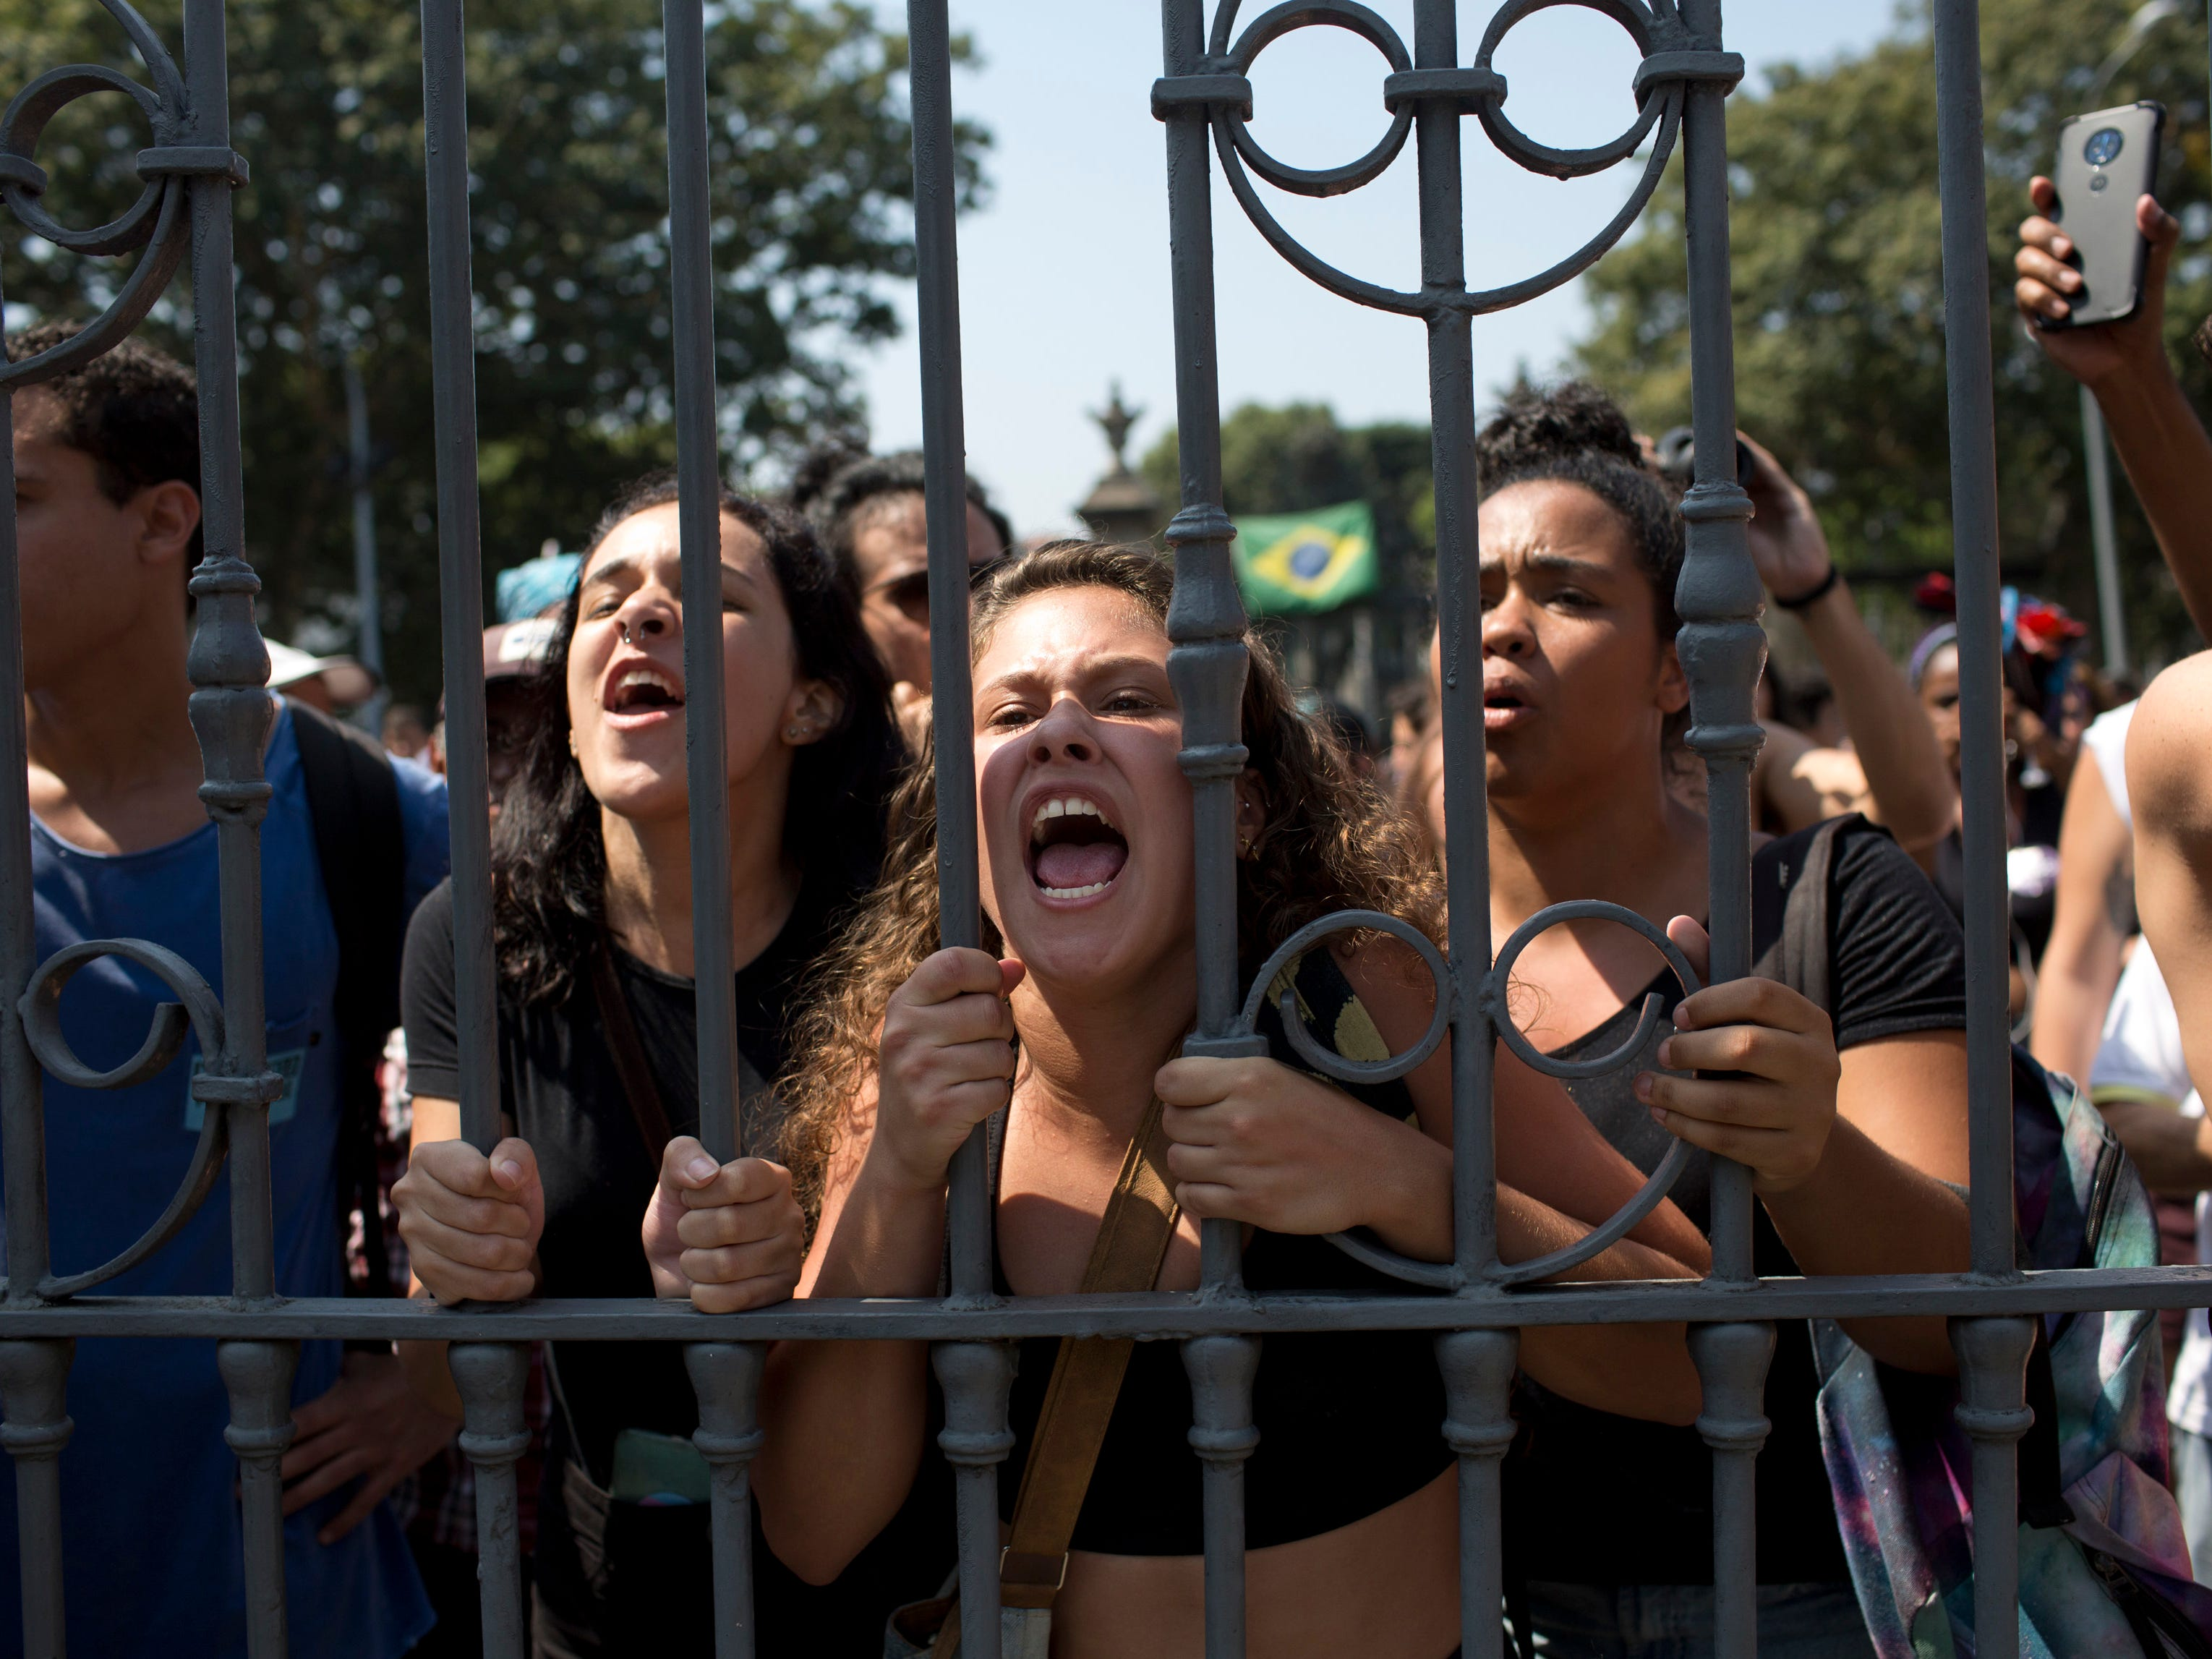 Students and National Museum employees protest outside the institution after it was gutted by an overnight fire in Rio de Janeiro, Brazil, Sept. 3, 2018. Recriminations flew over who was responsible for the loss of at least part of Latin America's largest archive of historical artifacts, objects and documents.